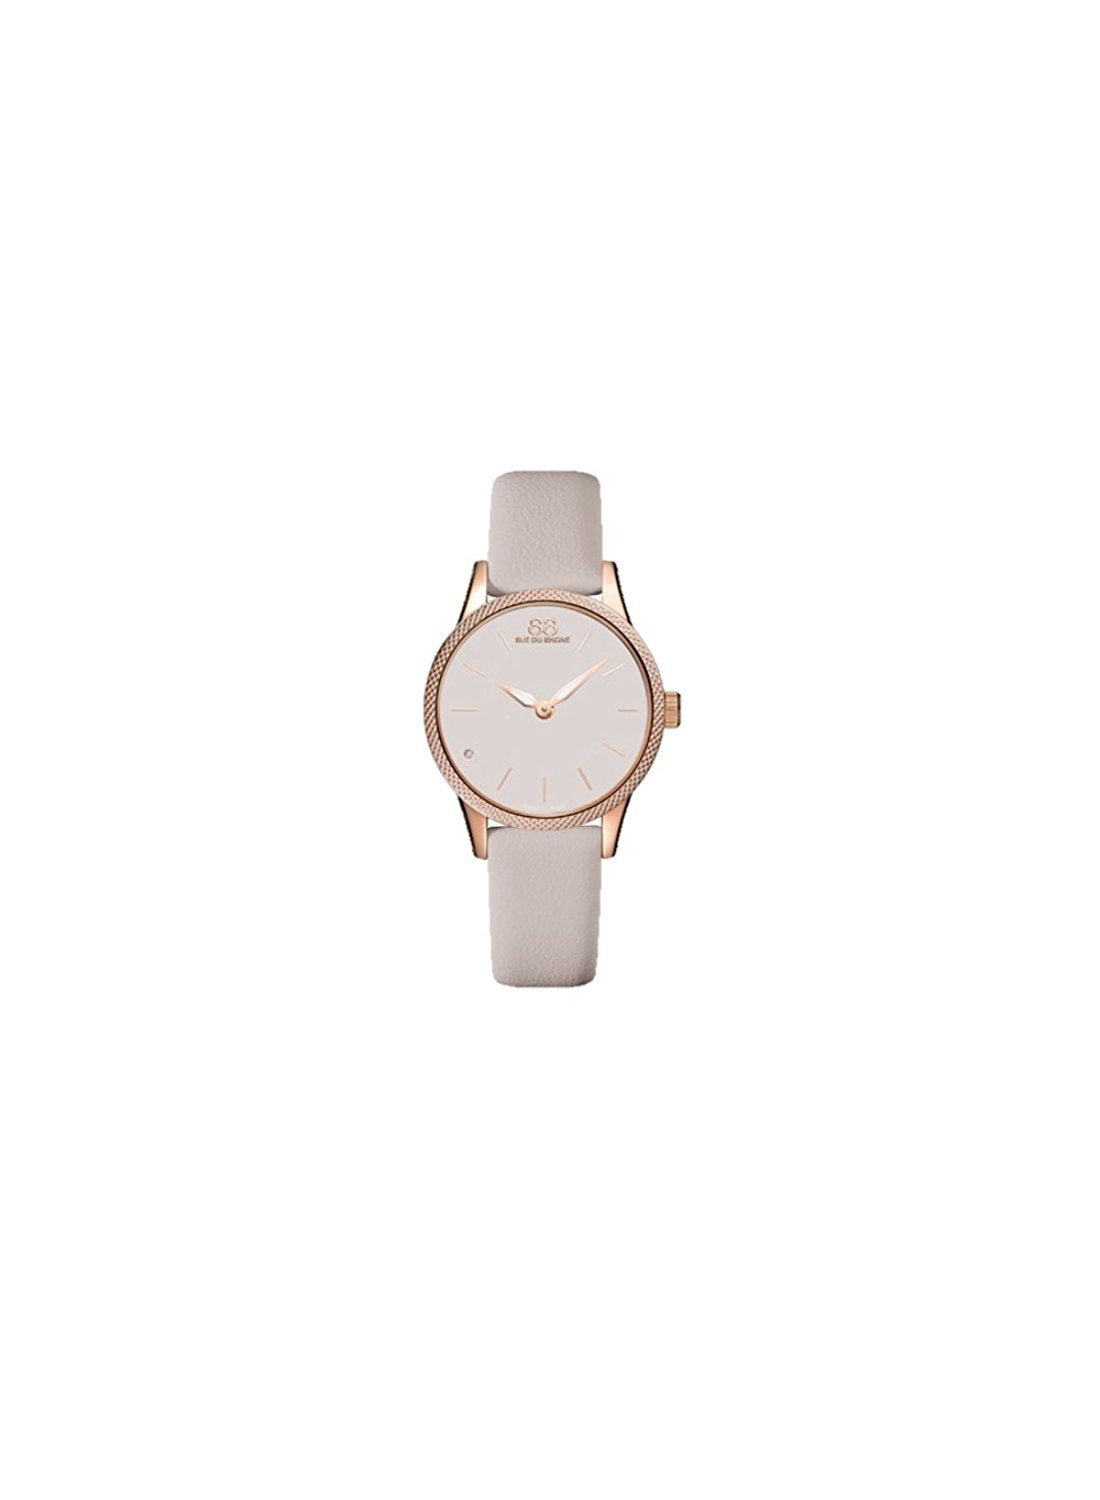 88 Rue du Rhone Swiss Quartz Rive Collection Women's Watch 87WA173203